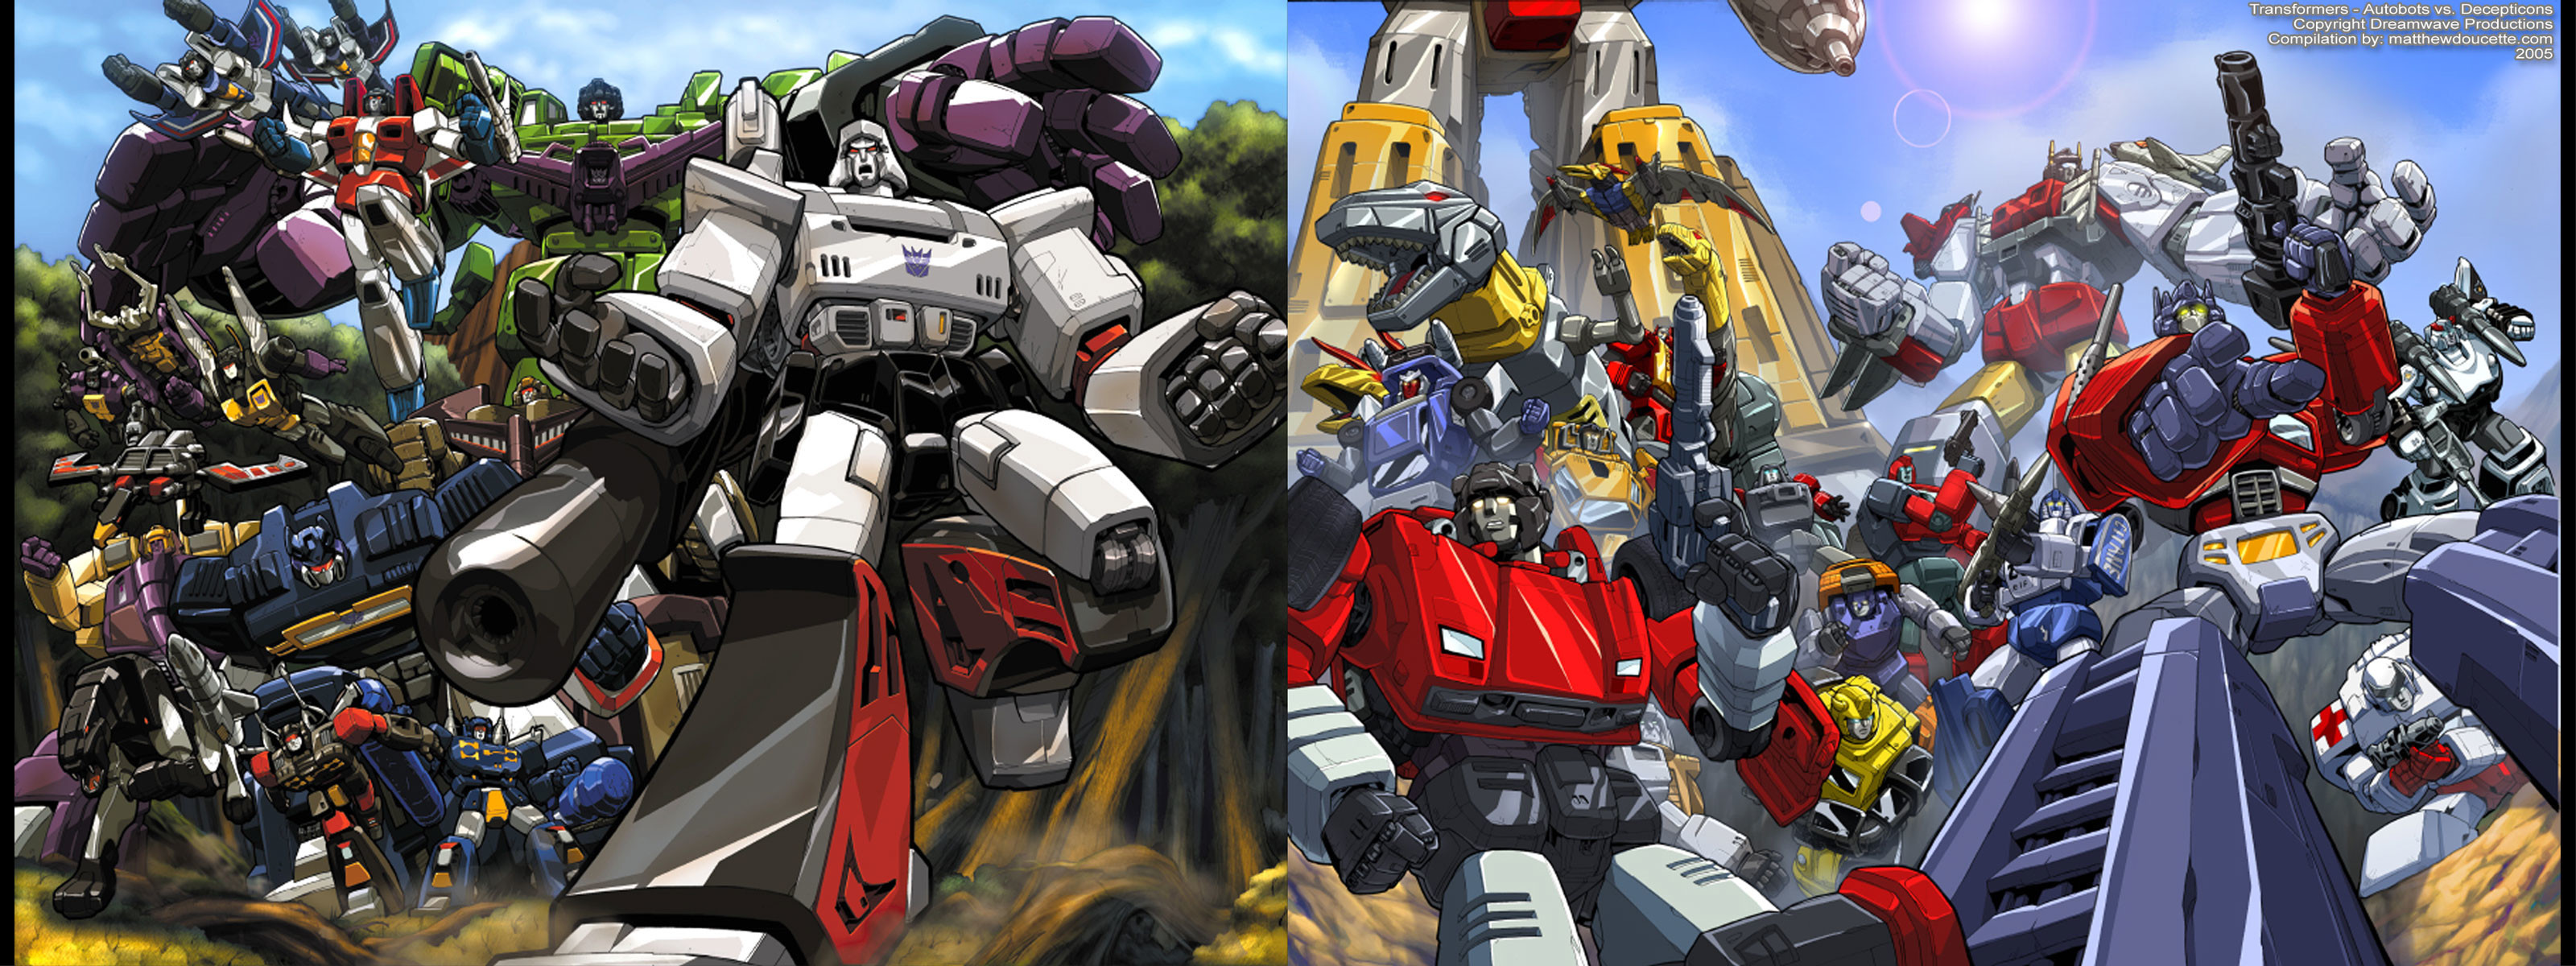 Res: 3200x1200, Res: 1920x1200, Transformers optimus prime Wallpapers ...